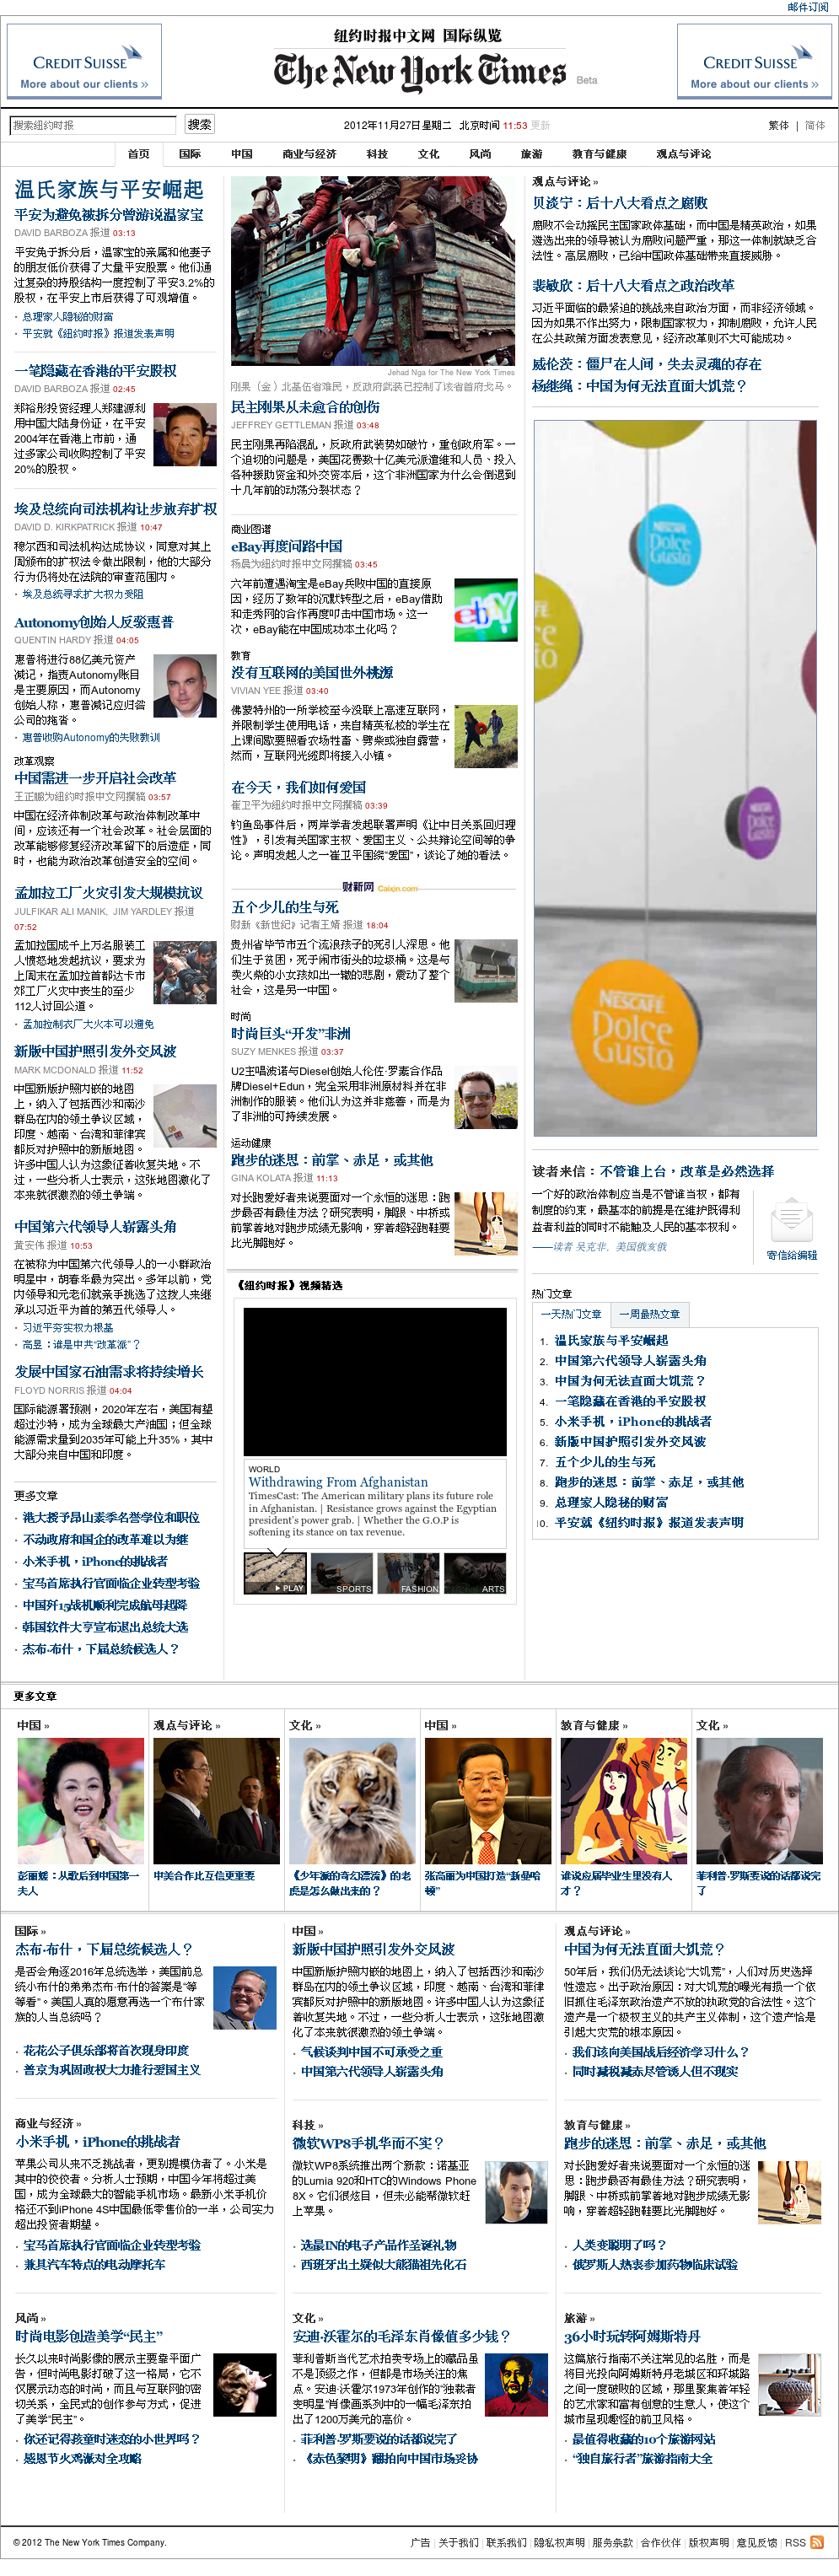 The New York Times (Chinese) at Tuesday Nov. 27, 2012, 7:23 a.m. UTC